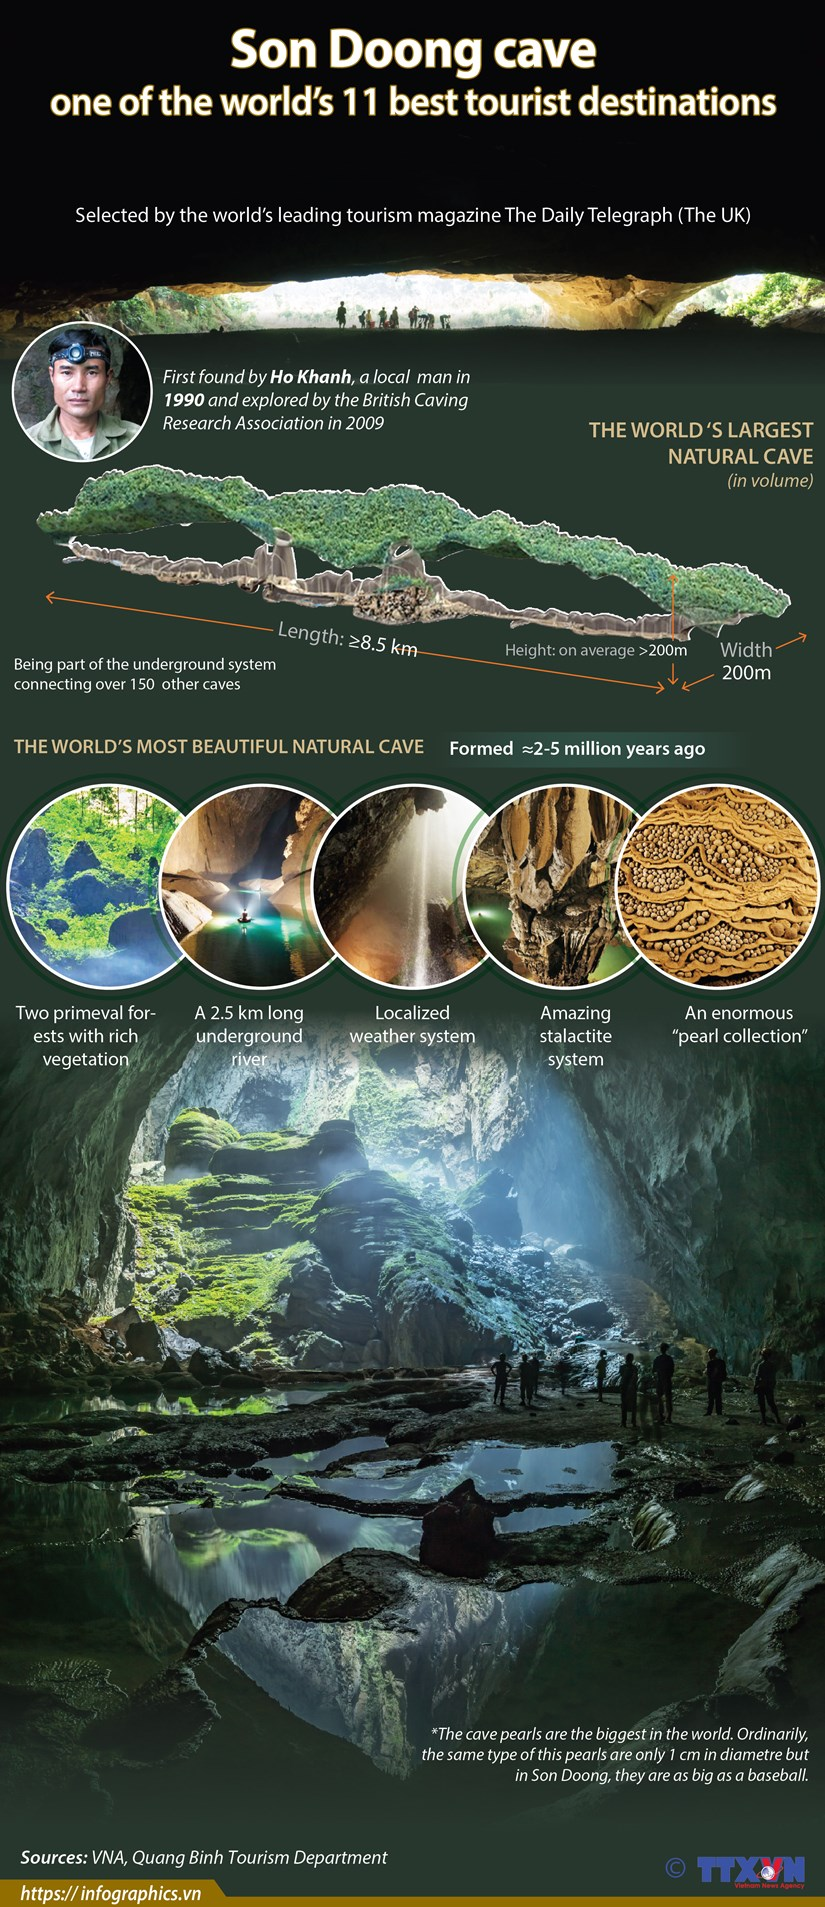 Son Doong cave - one of the world's 11 best tourist destinations hinh anh 1